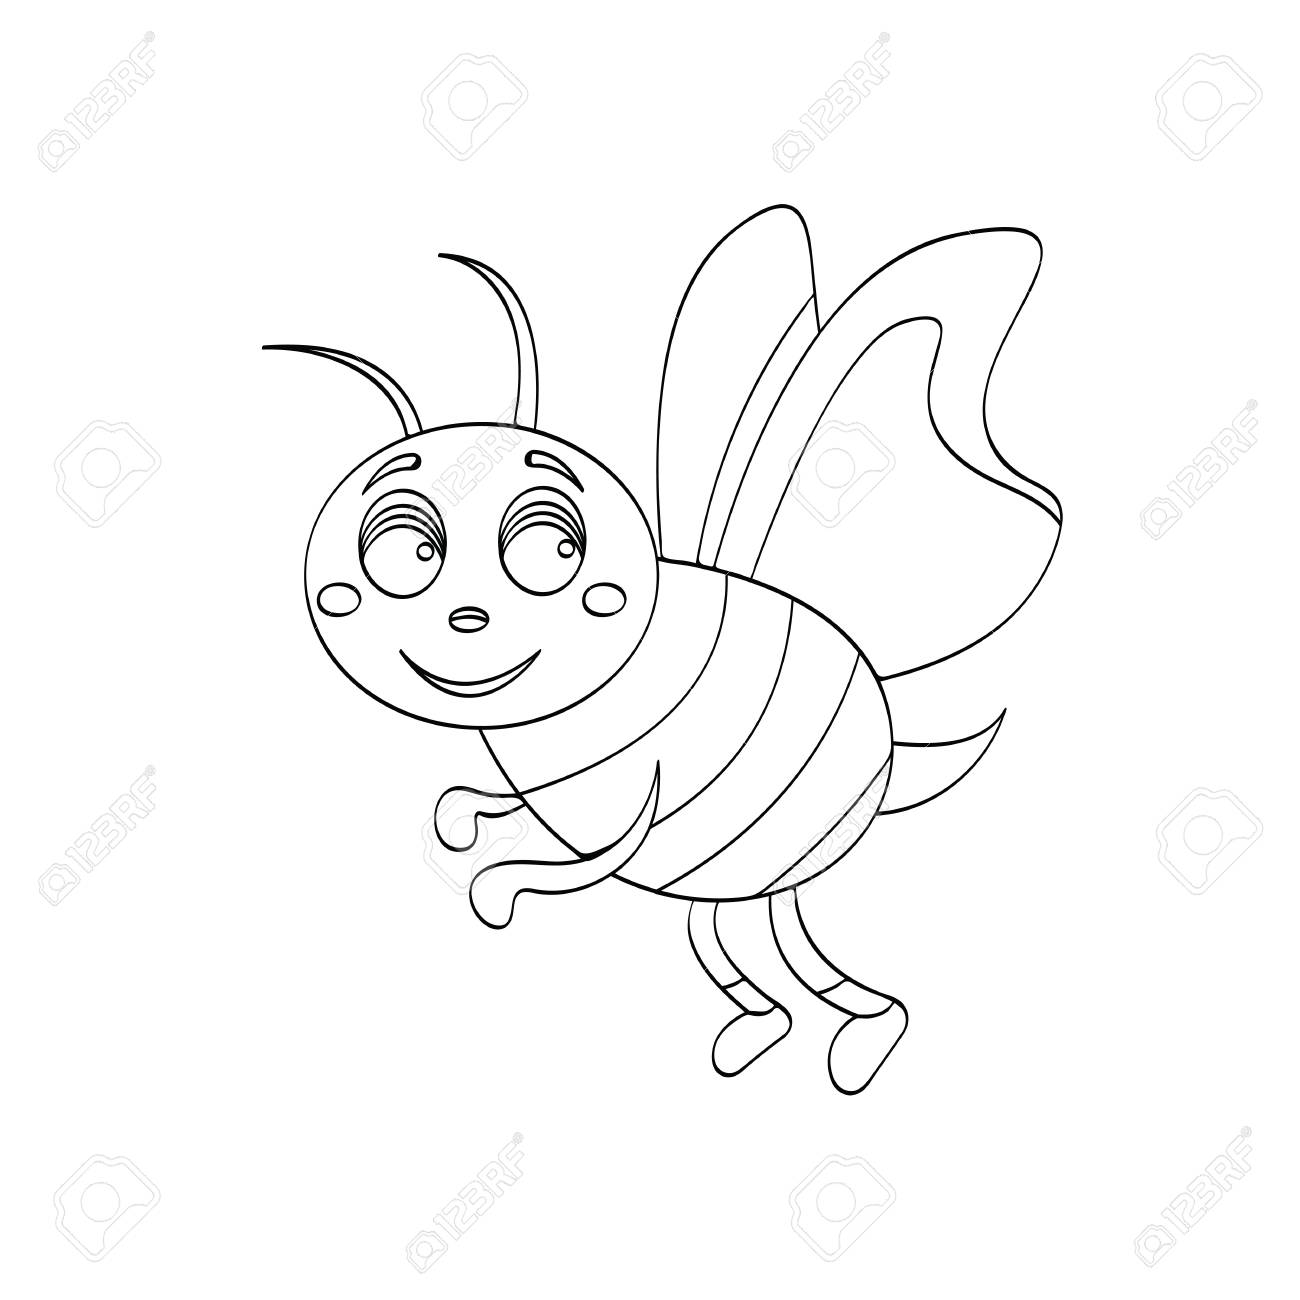 Illustration of wasp cartoon for kids drawing or an outline for painting game stock vector